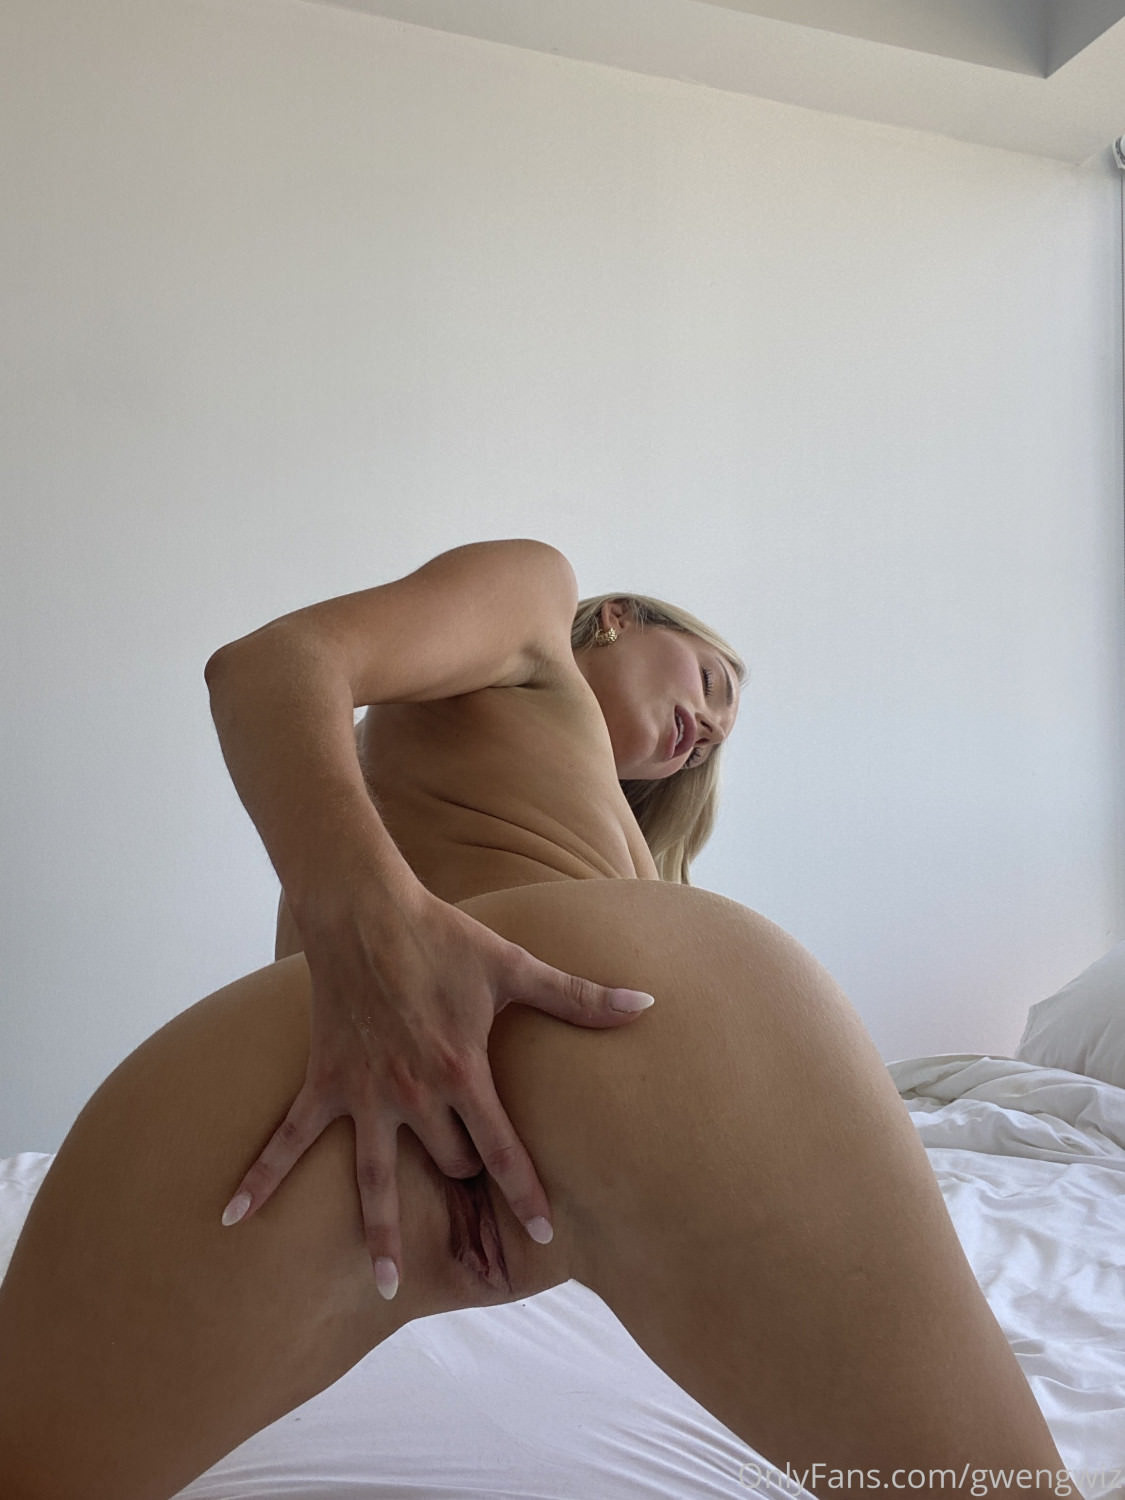 NEW PORN: GwenGwiz Nude & Sex Tape Onlyfans Leaked!